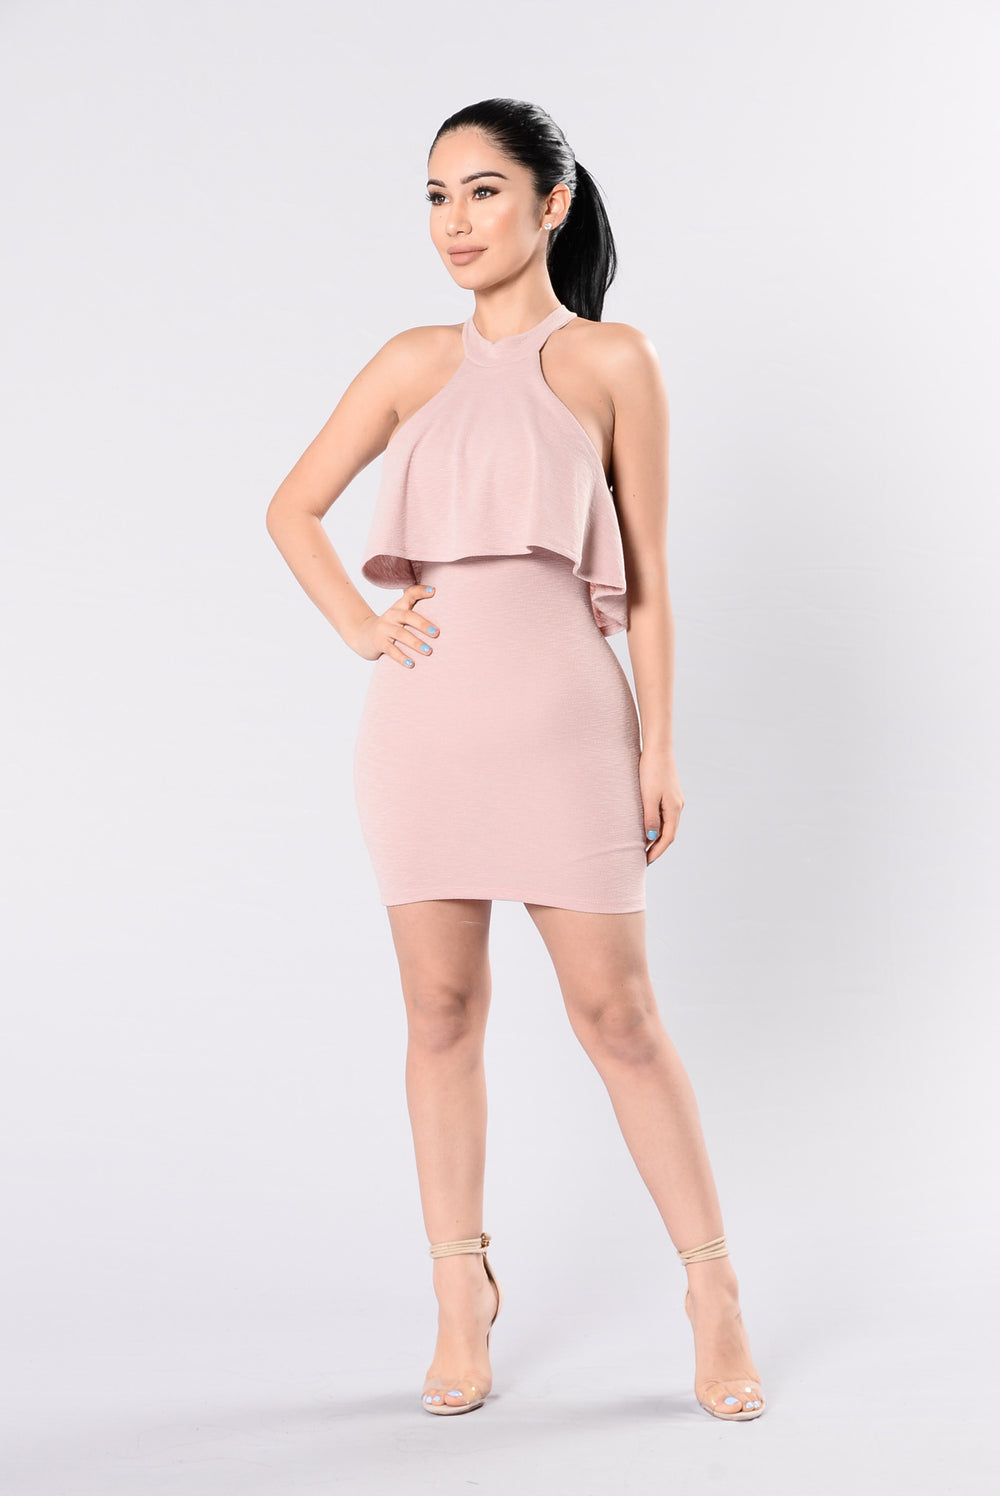 Lady Marmalade Dress - Mauve